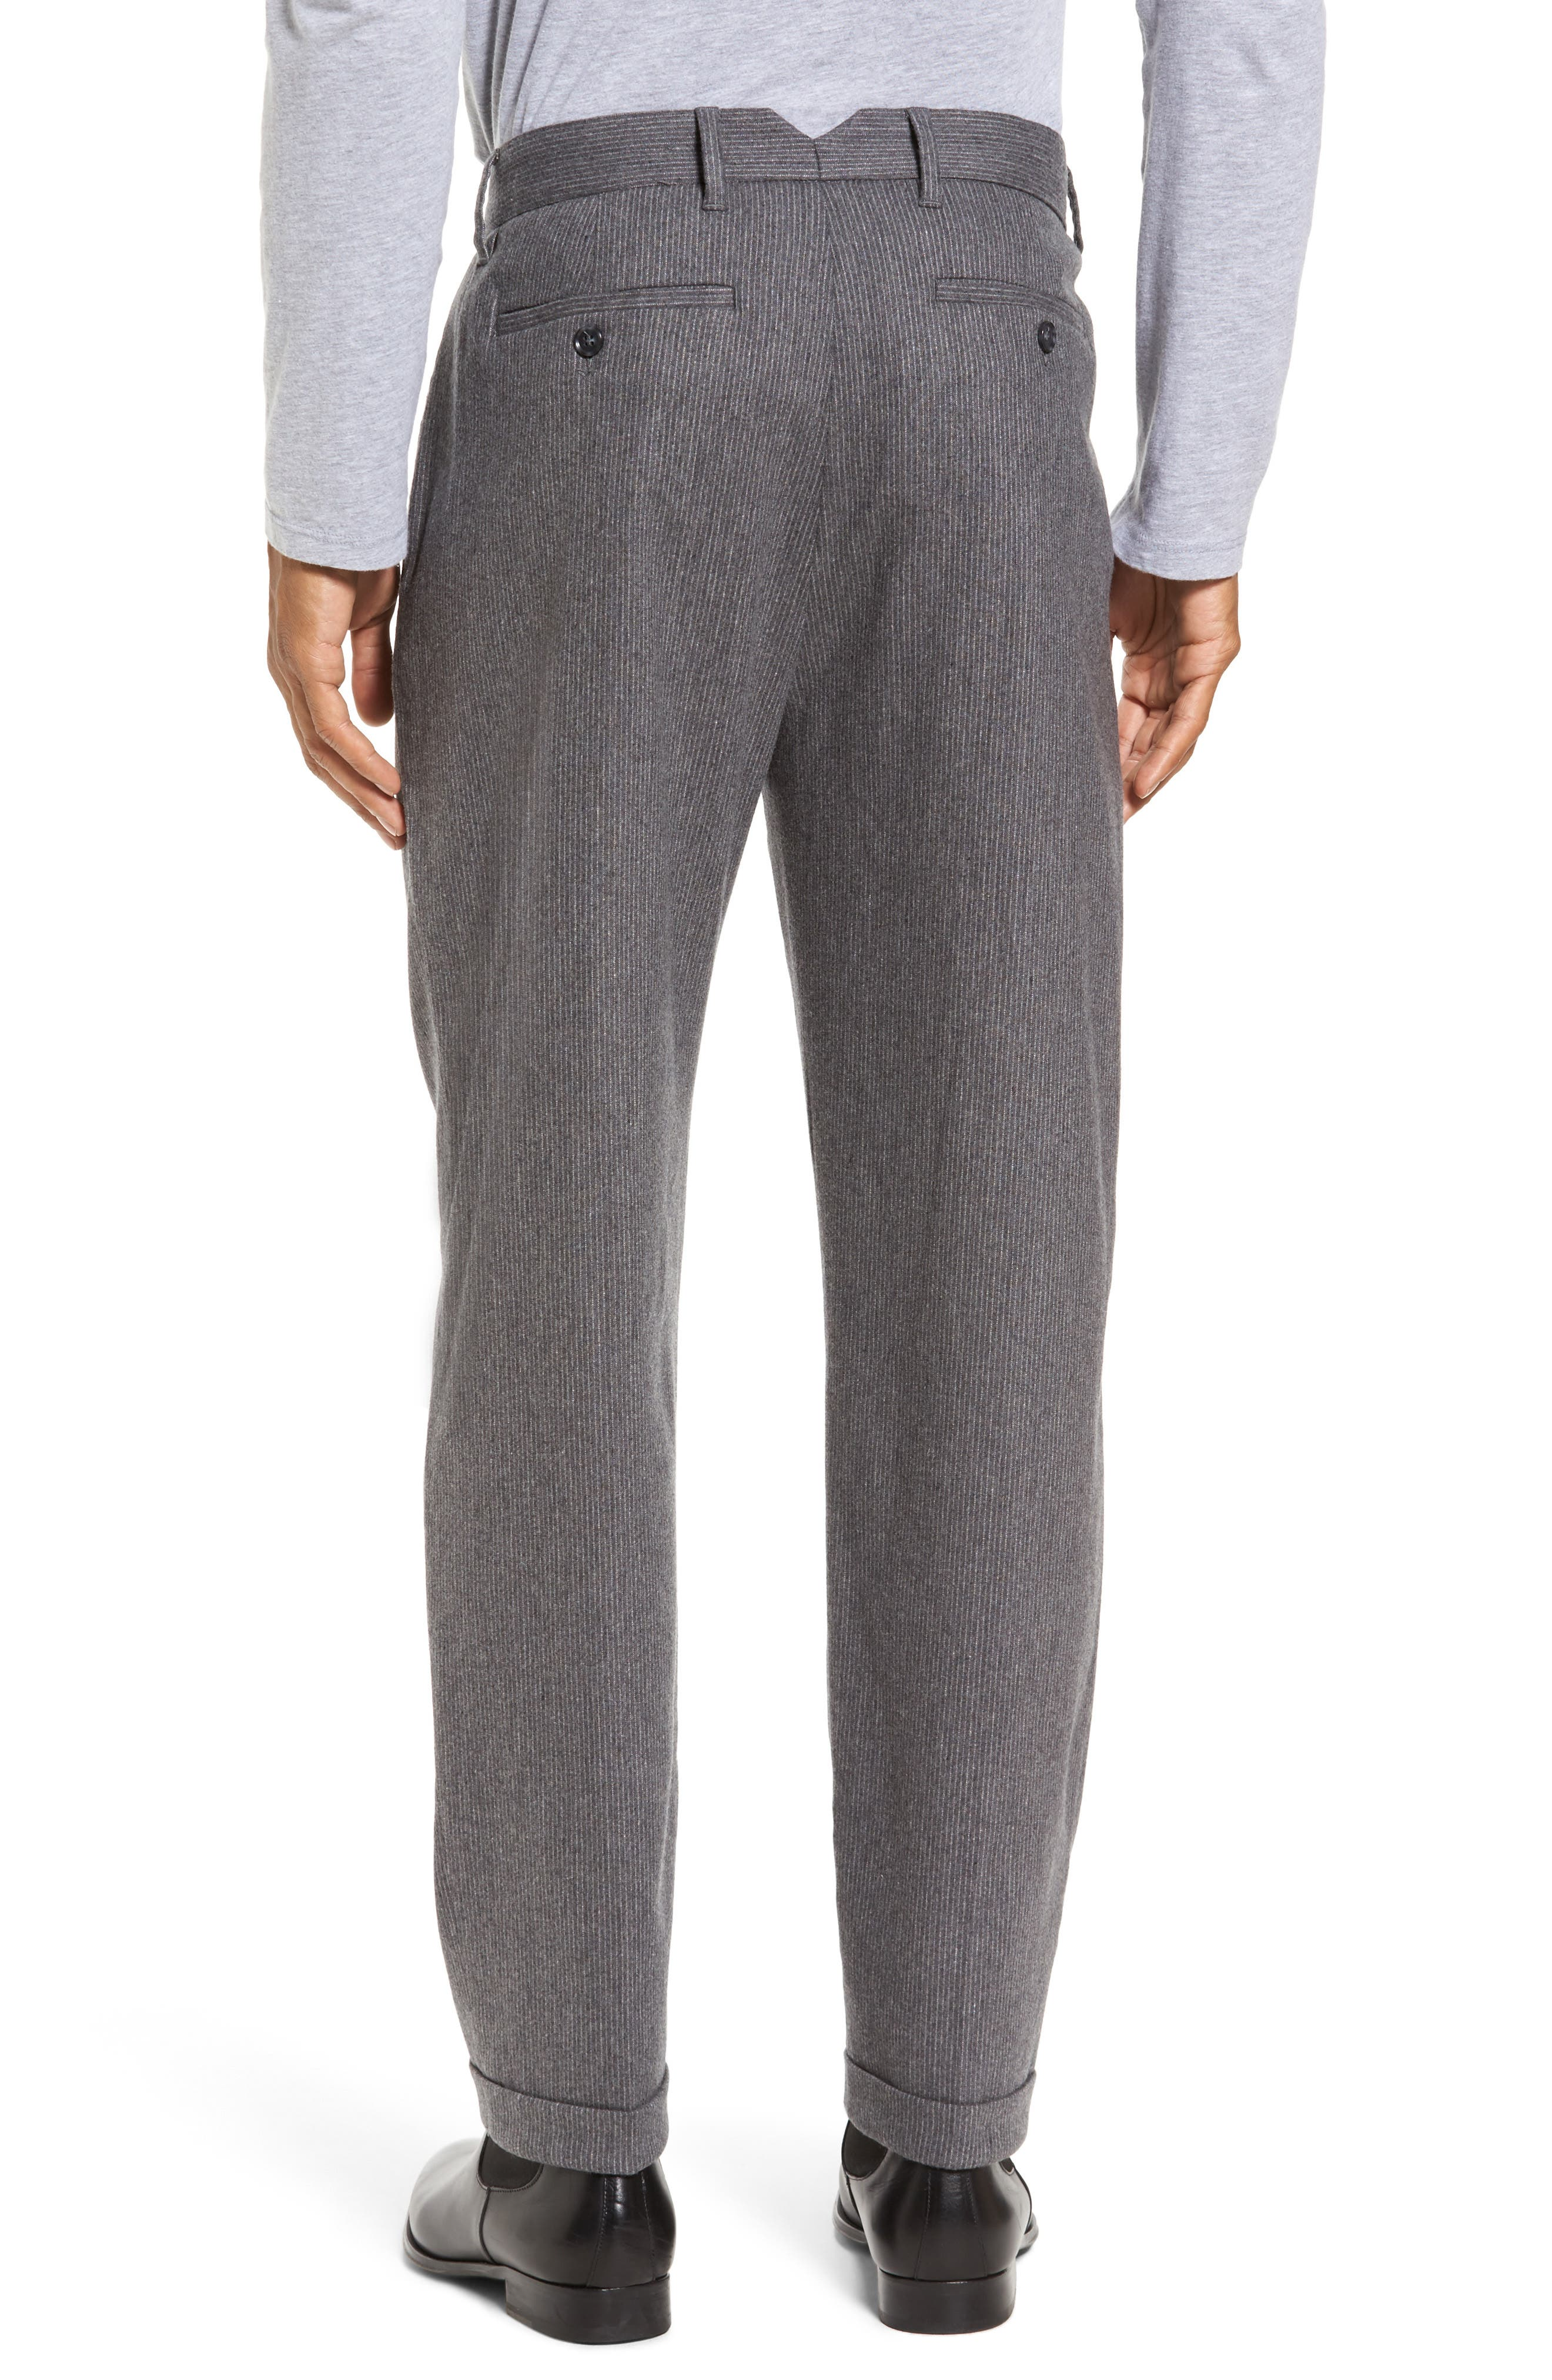 Rushmore Pinstripe Stretch Wool Blend Trousers,                             Alternate thumbnail 2, color,                             020